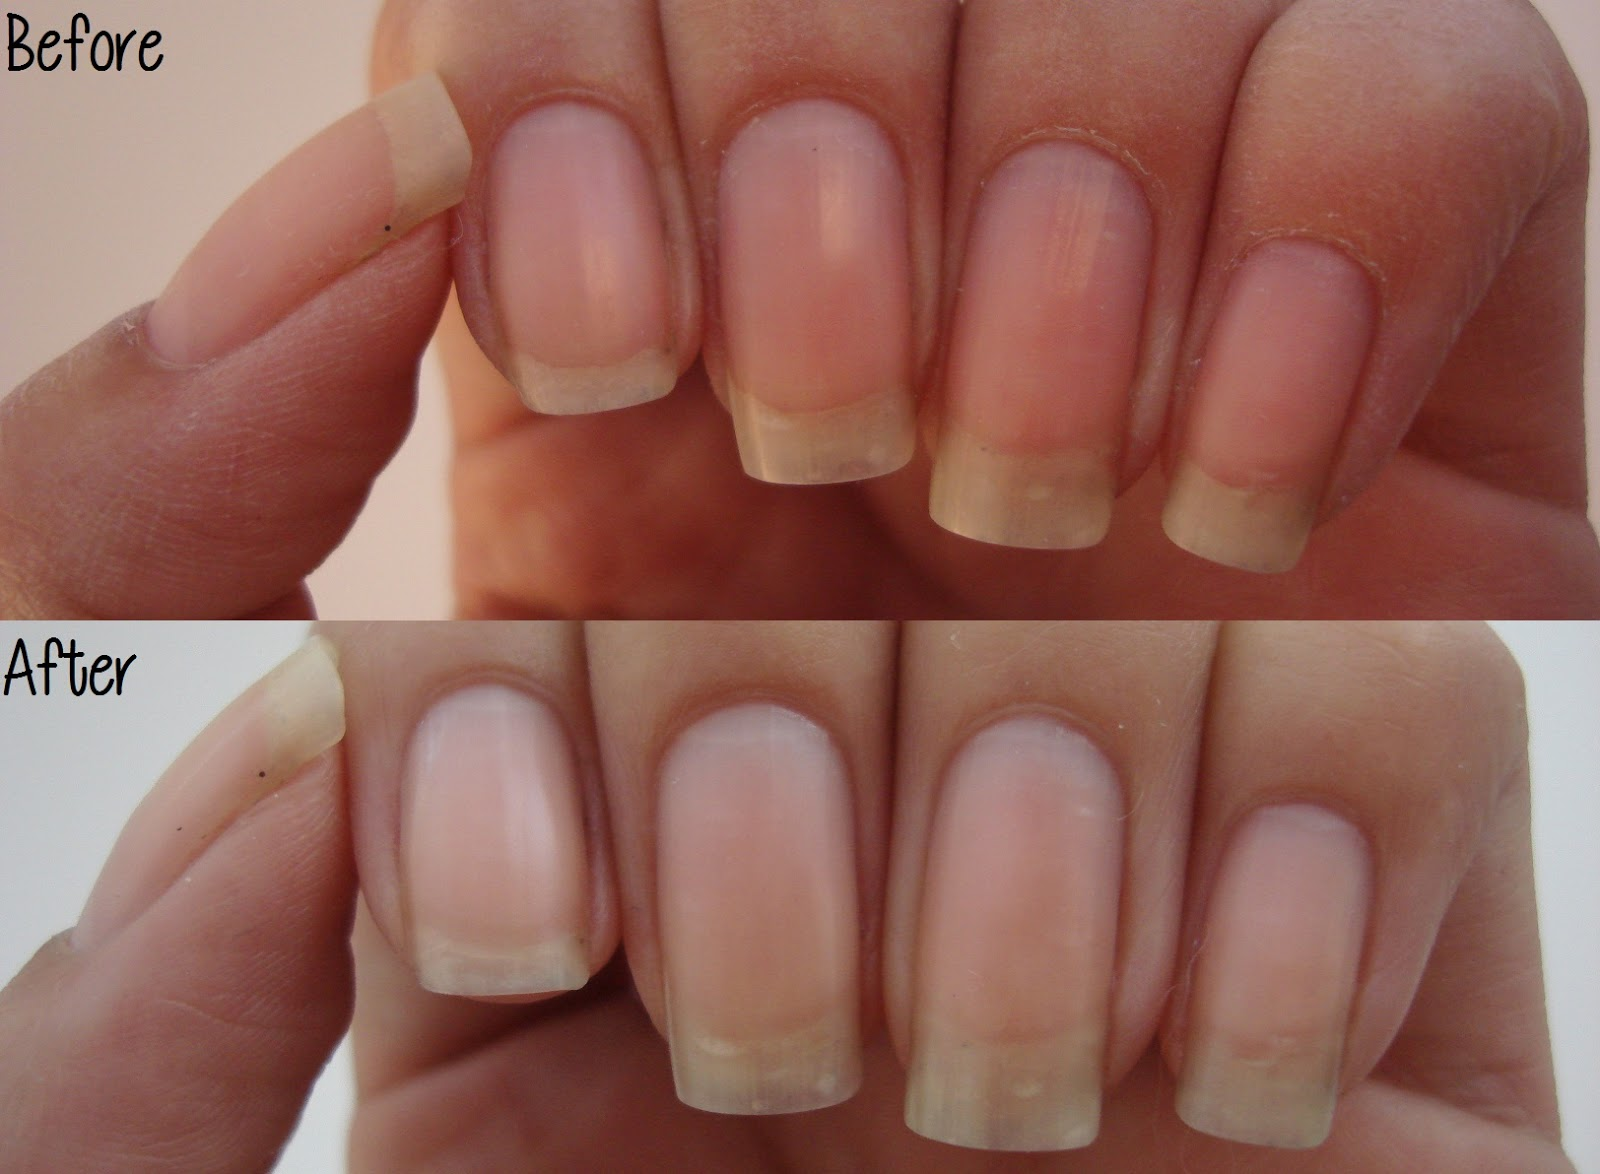 Intense Polish Therapy Theface Milk Calcium Nail Pack